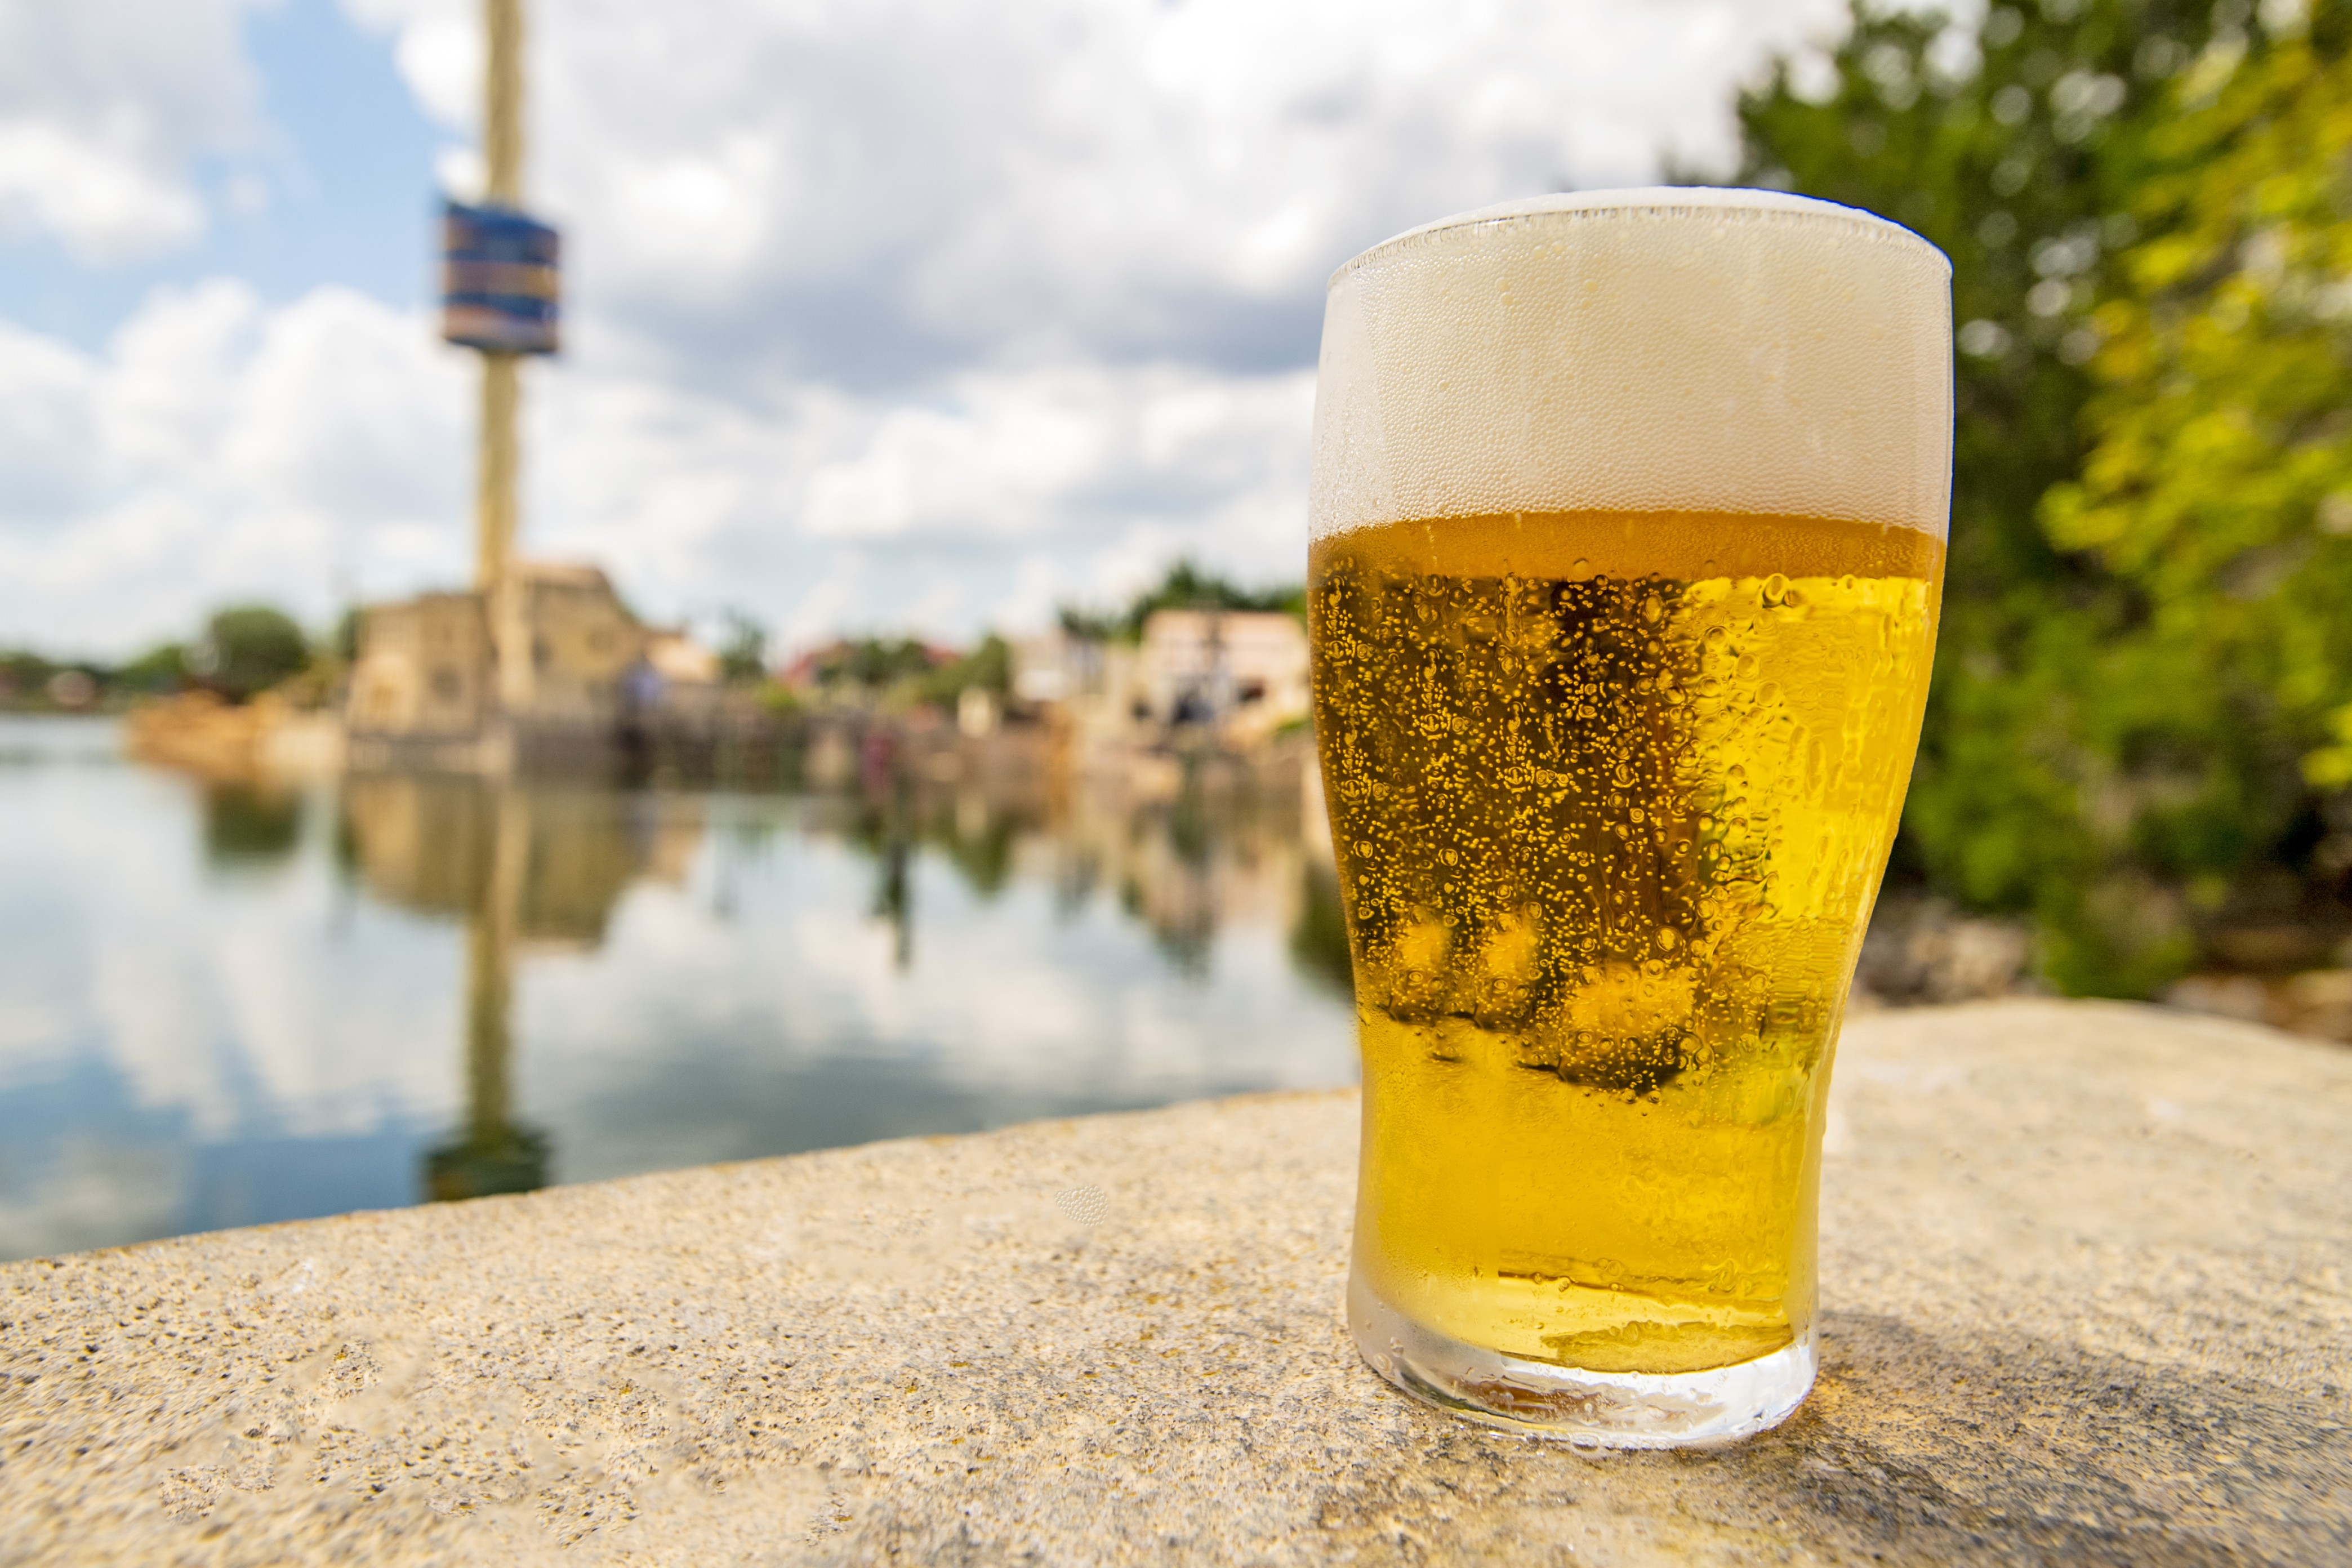 SeaWorld Orlando is giving away free beer again this summer